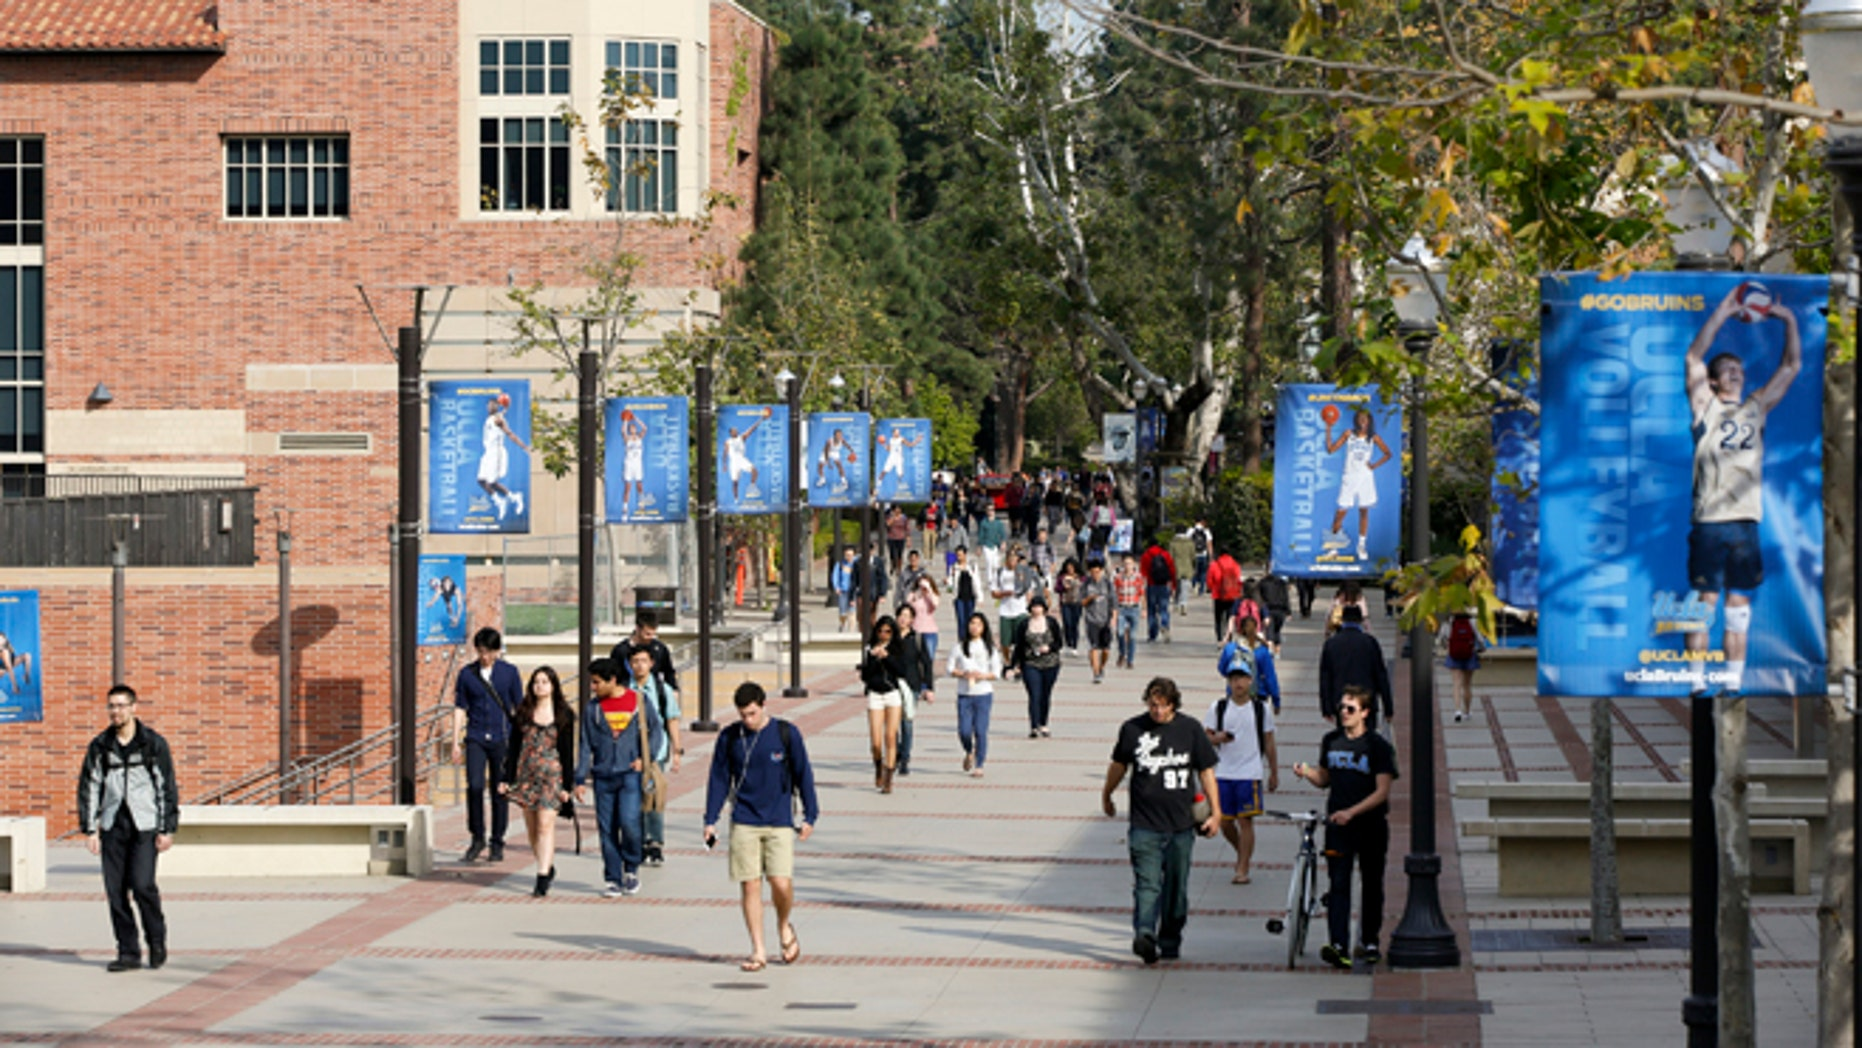 FILE - In this Feb. 26, 2015 file photo, students walk on the UCLA campus in Los Angeles. Fewer California high school students have been offered admission to University of California campuses for the fall, officials reported Thursday, July 2, 2015, while the number accepted from outside the state and abroad has again increased.  (AP Photo/Damian Dovarganes, File)